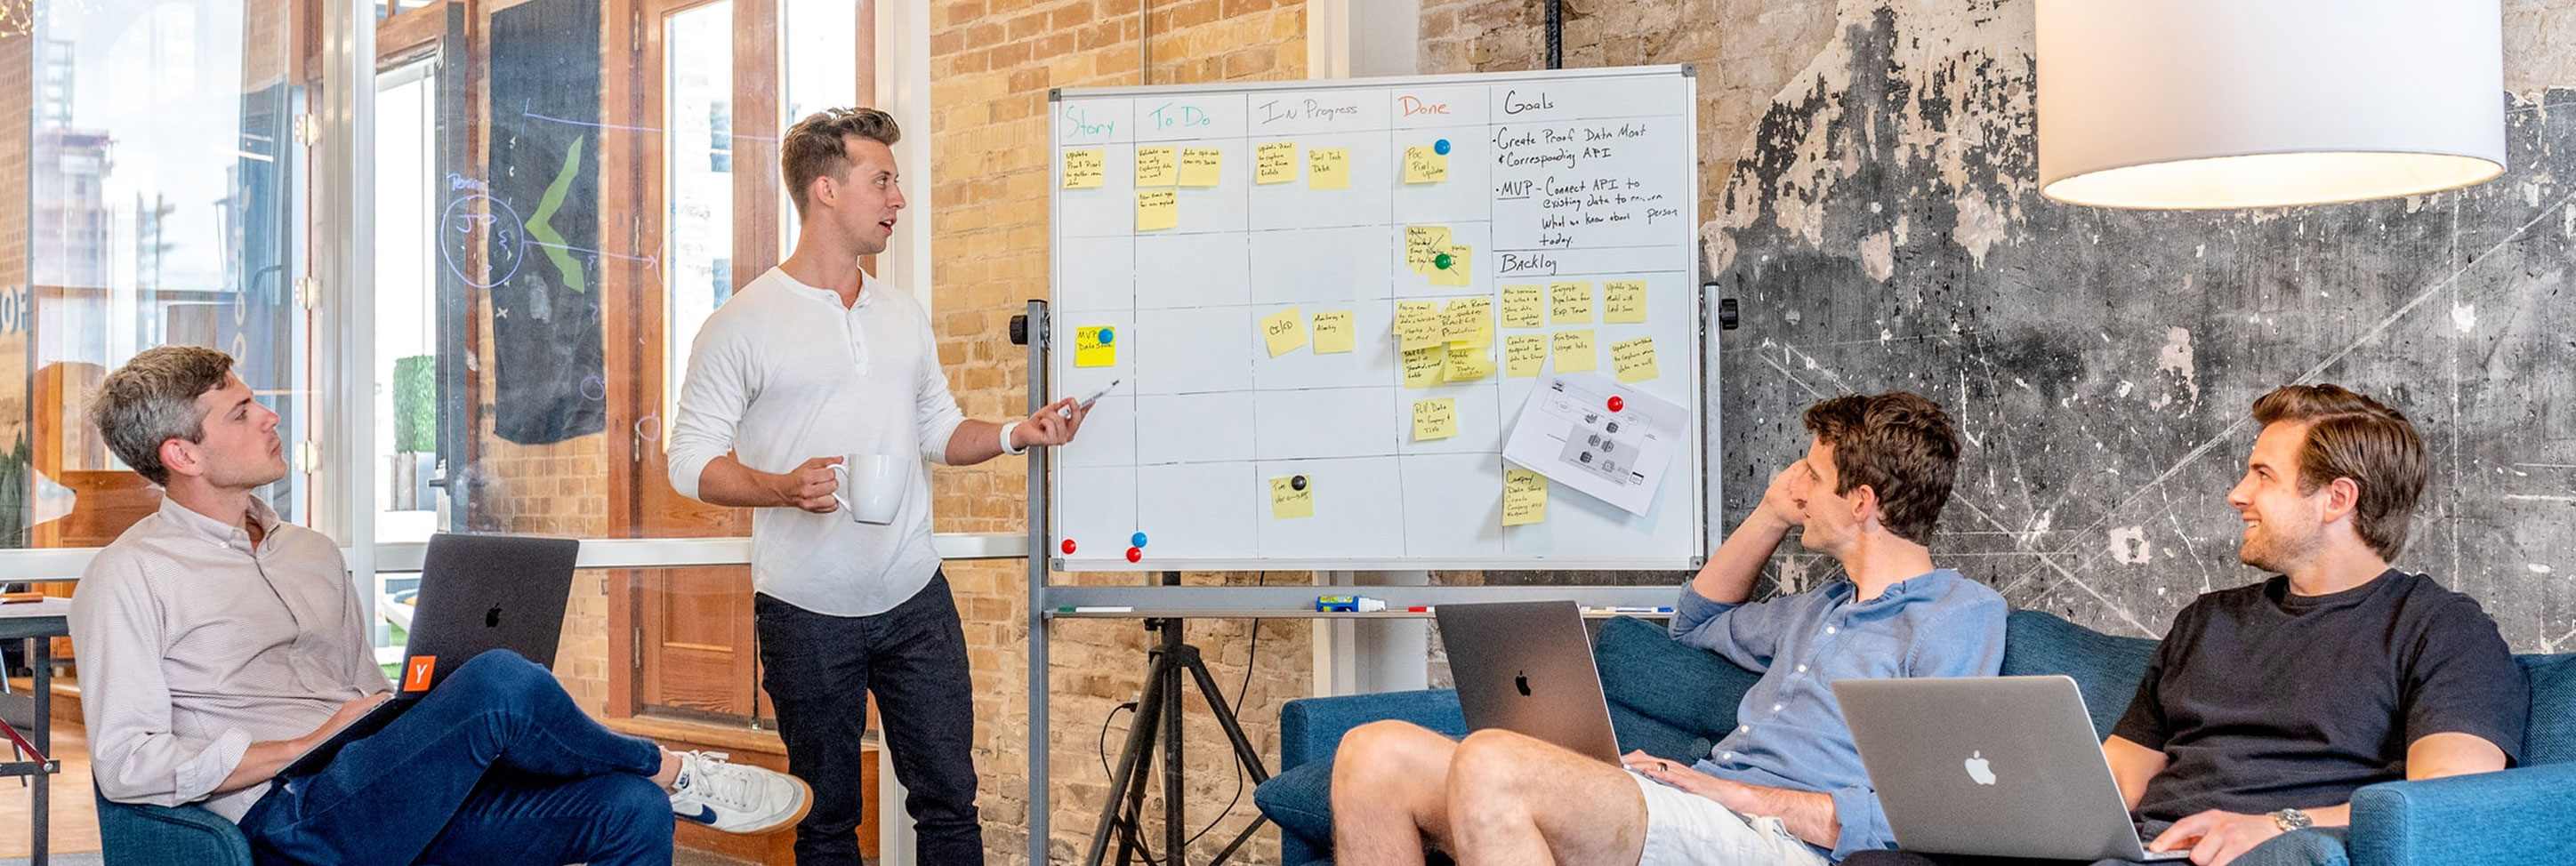 Image of a meeting with a whiteboard